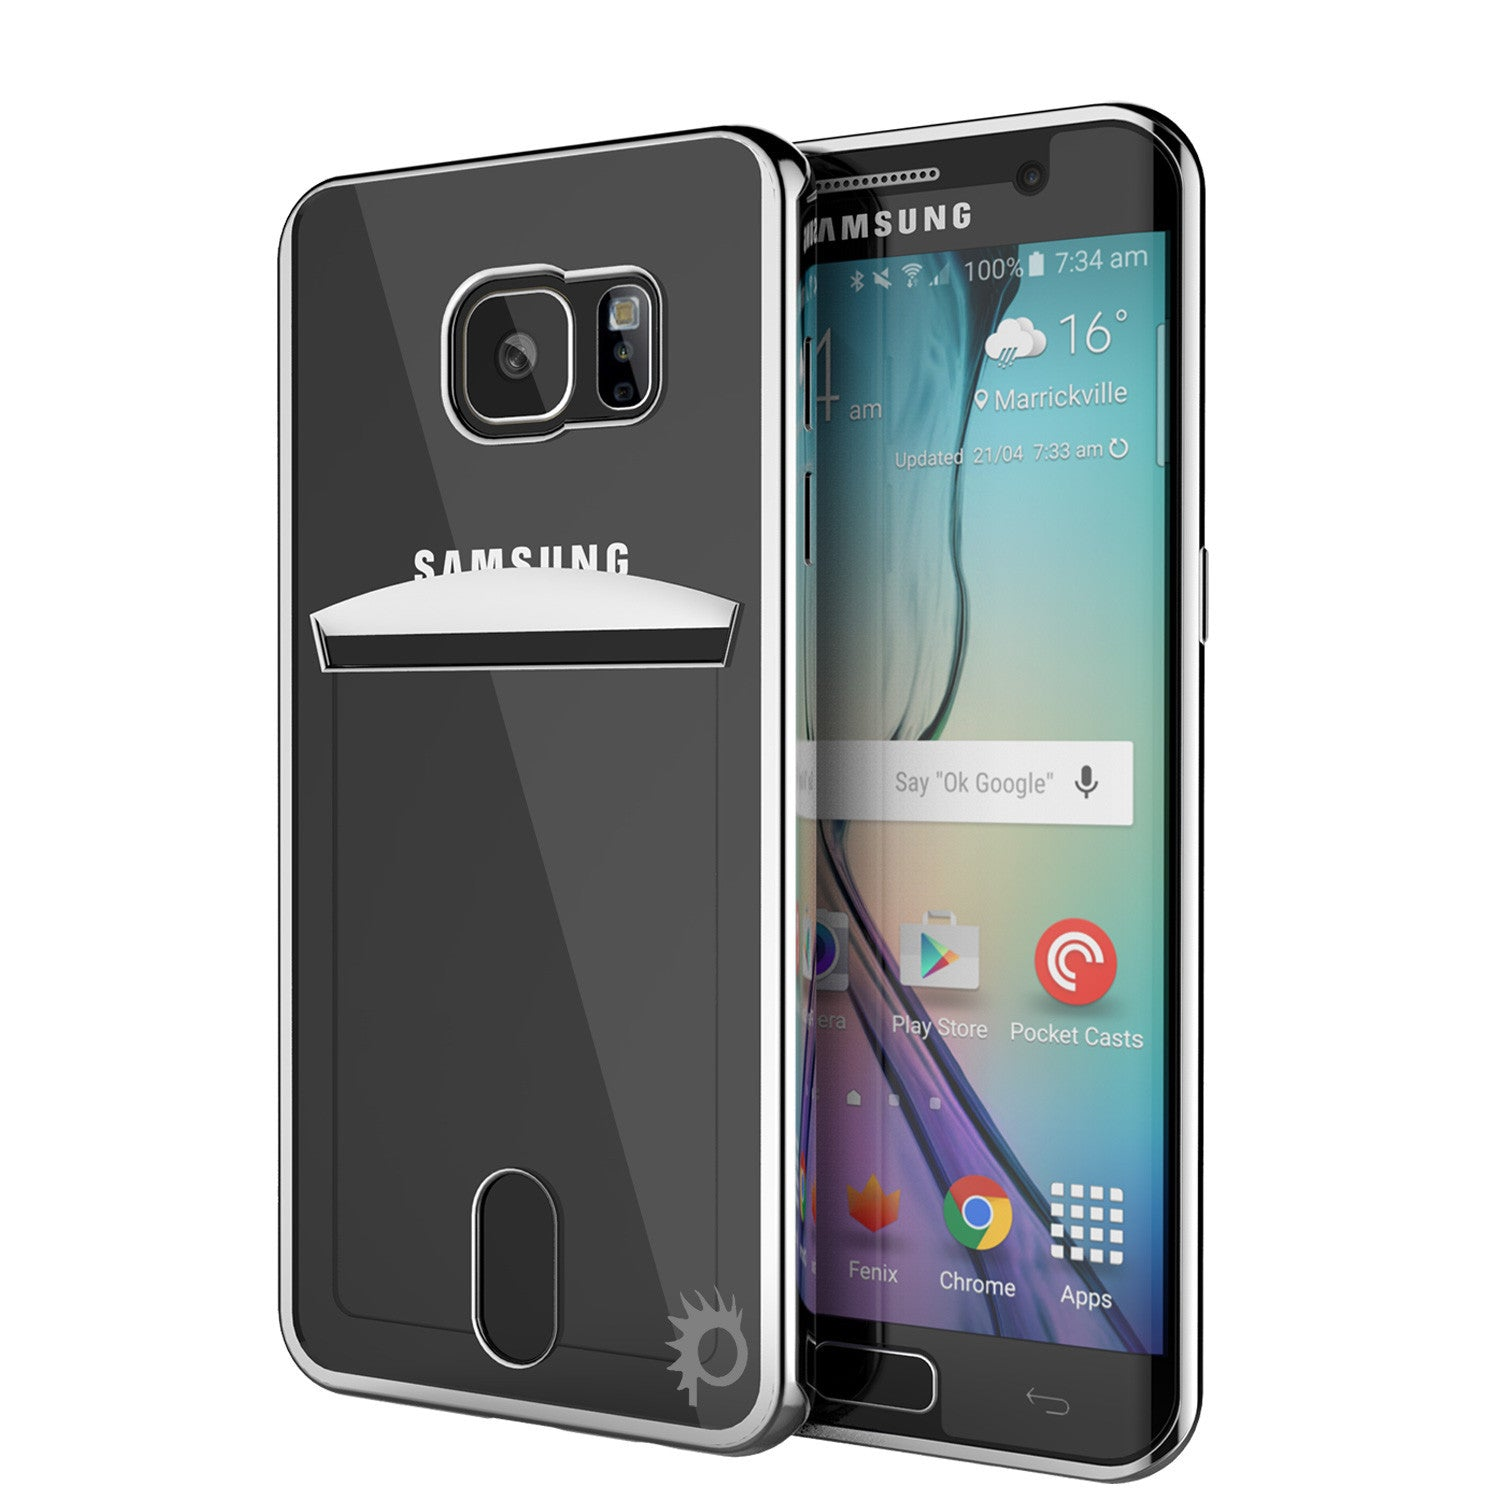 Galaxy S6 Case, PUNKCASE® LUCID Silver Series | Card Slot | SHIELD Screen Protector | Ultra fit